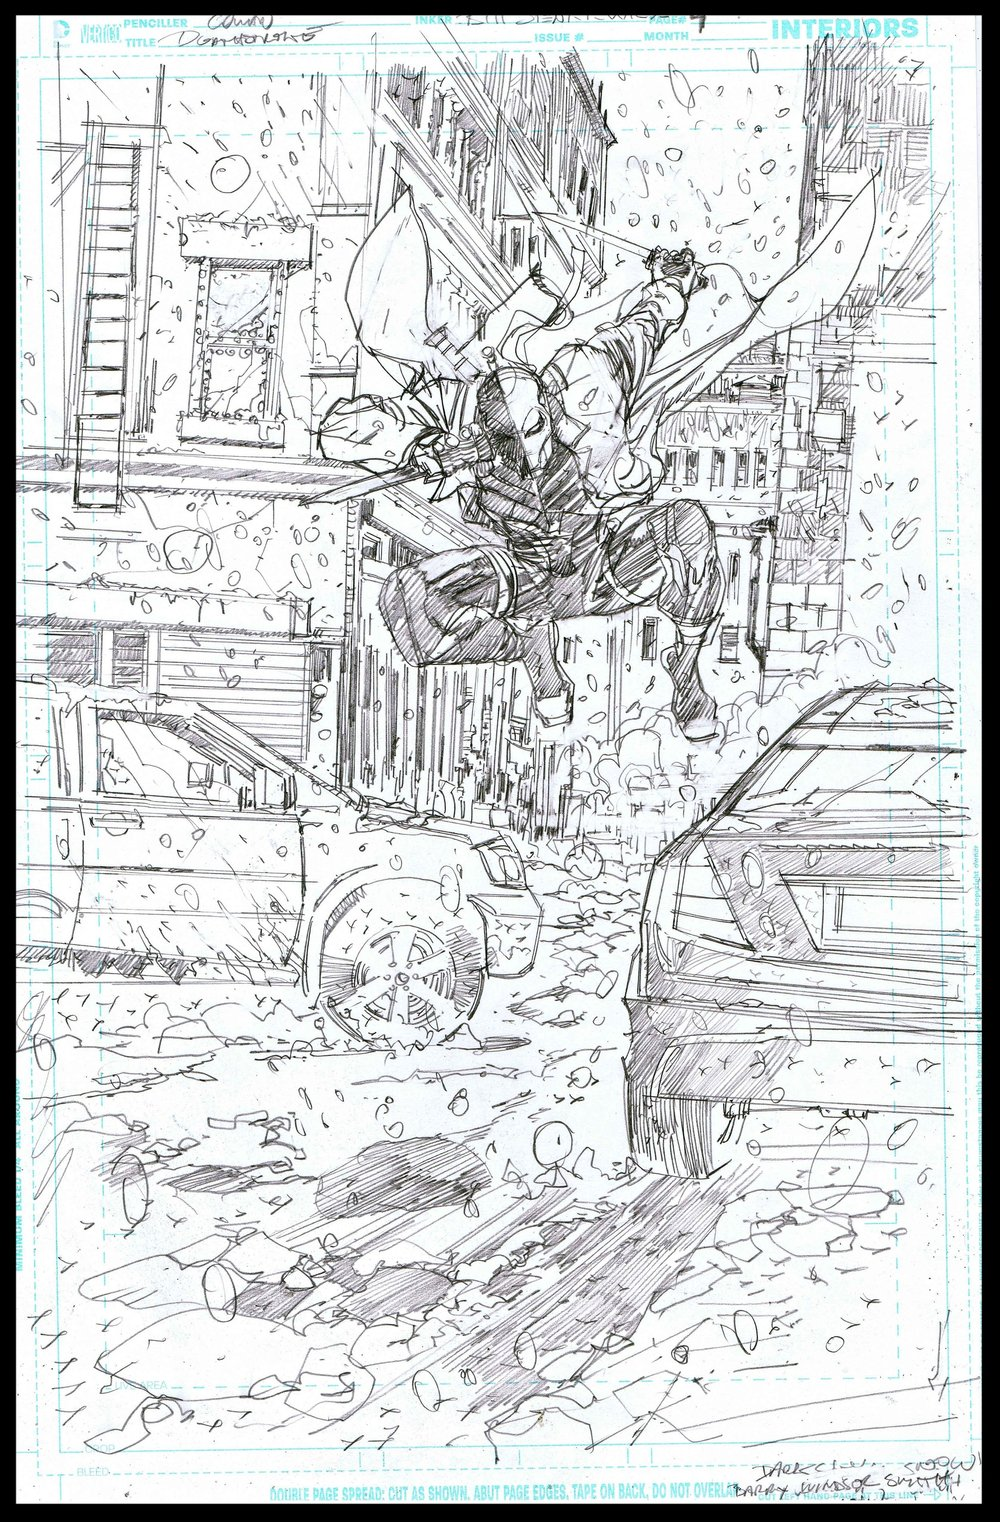 Deathstroke #11 - Page 4 - Pencils